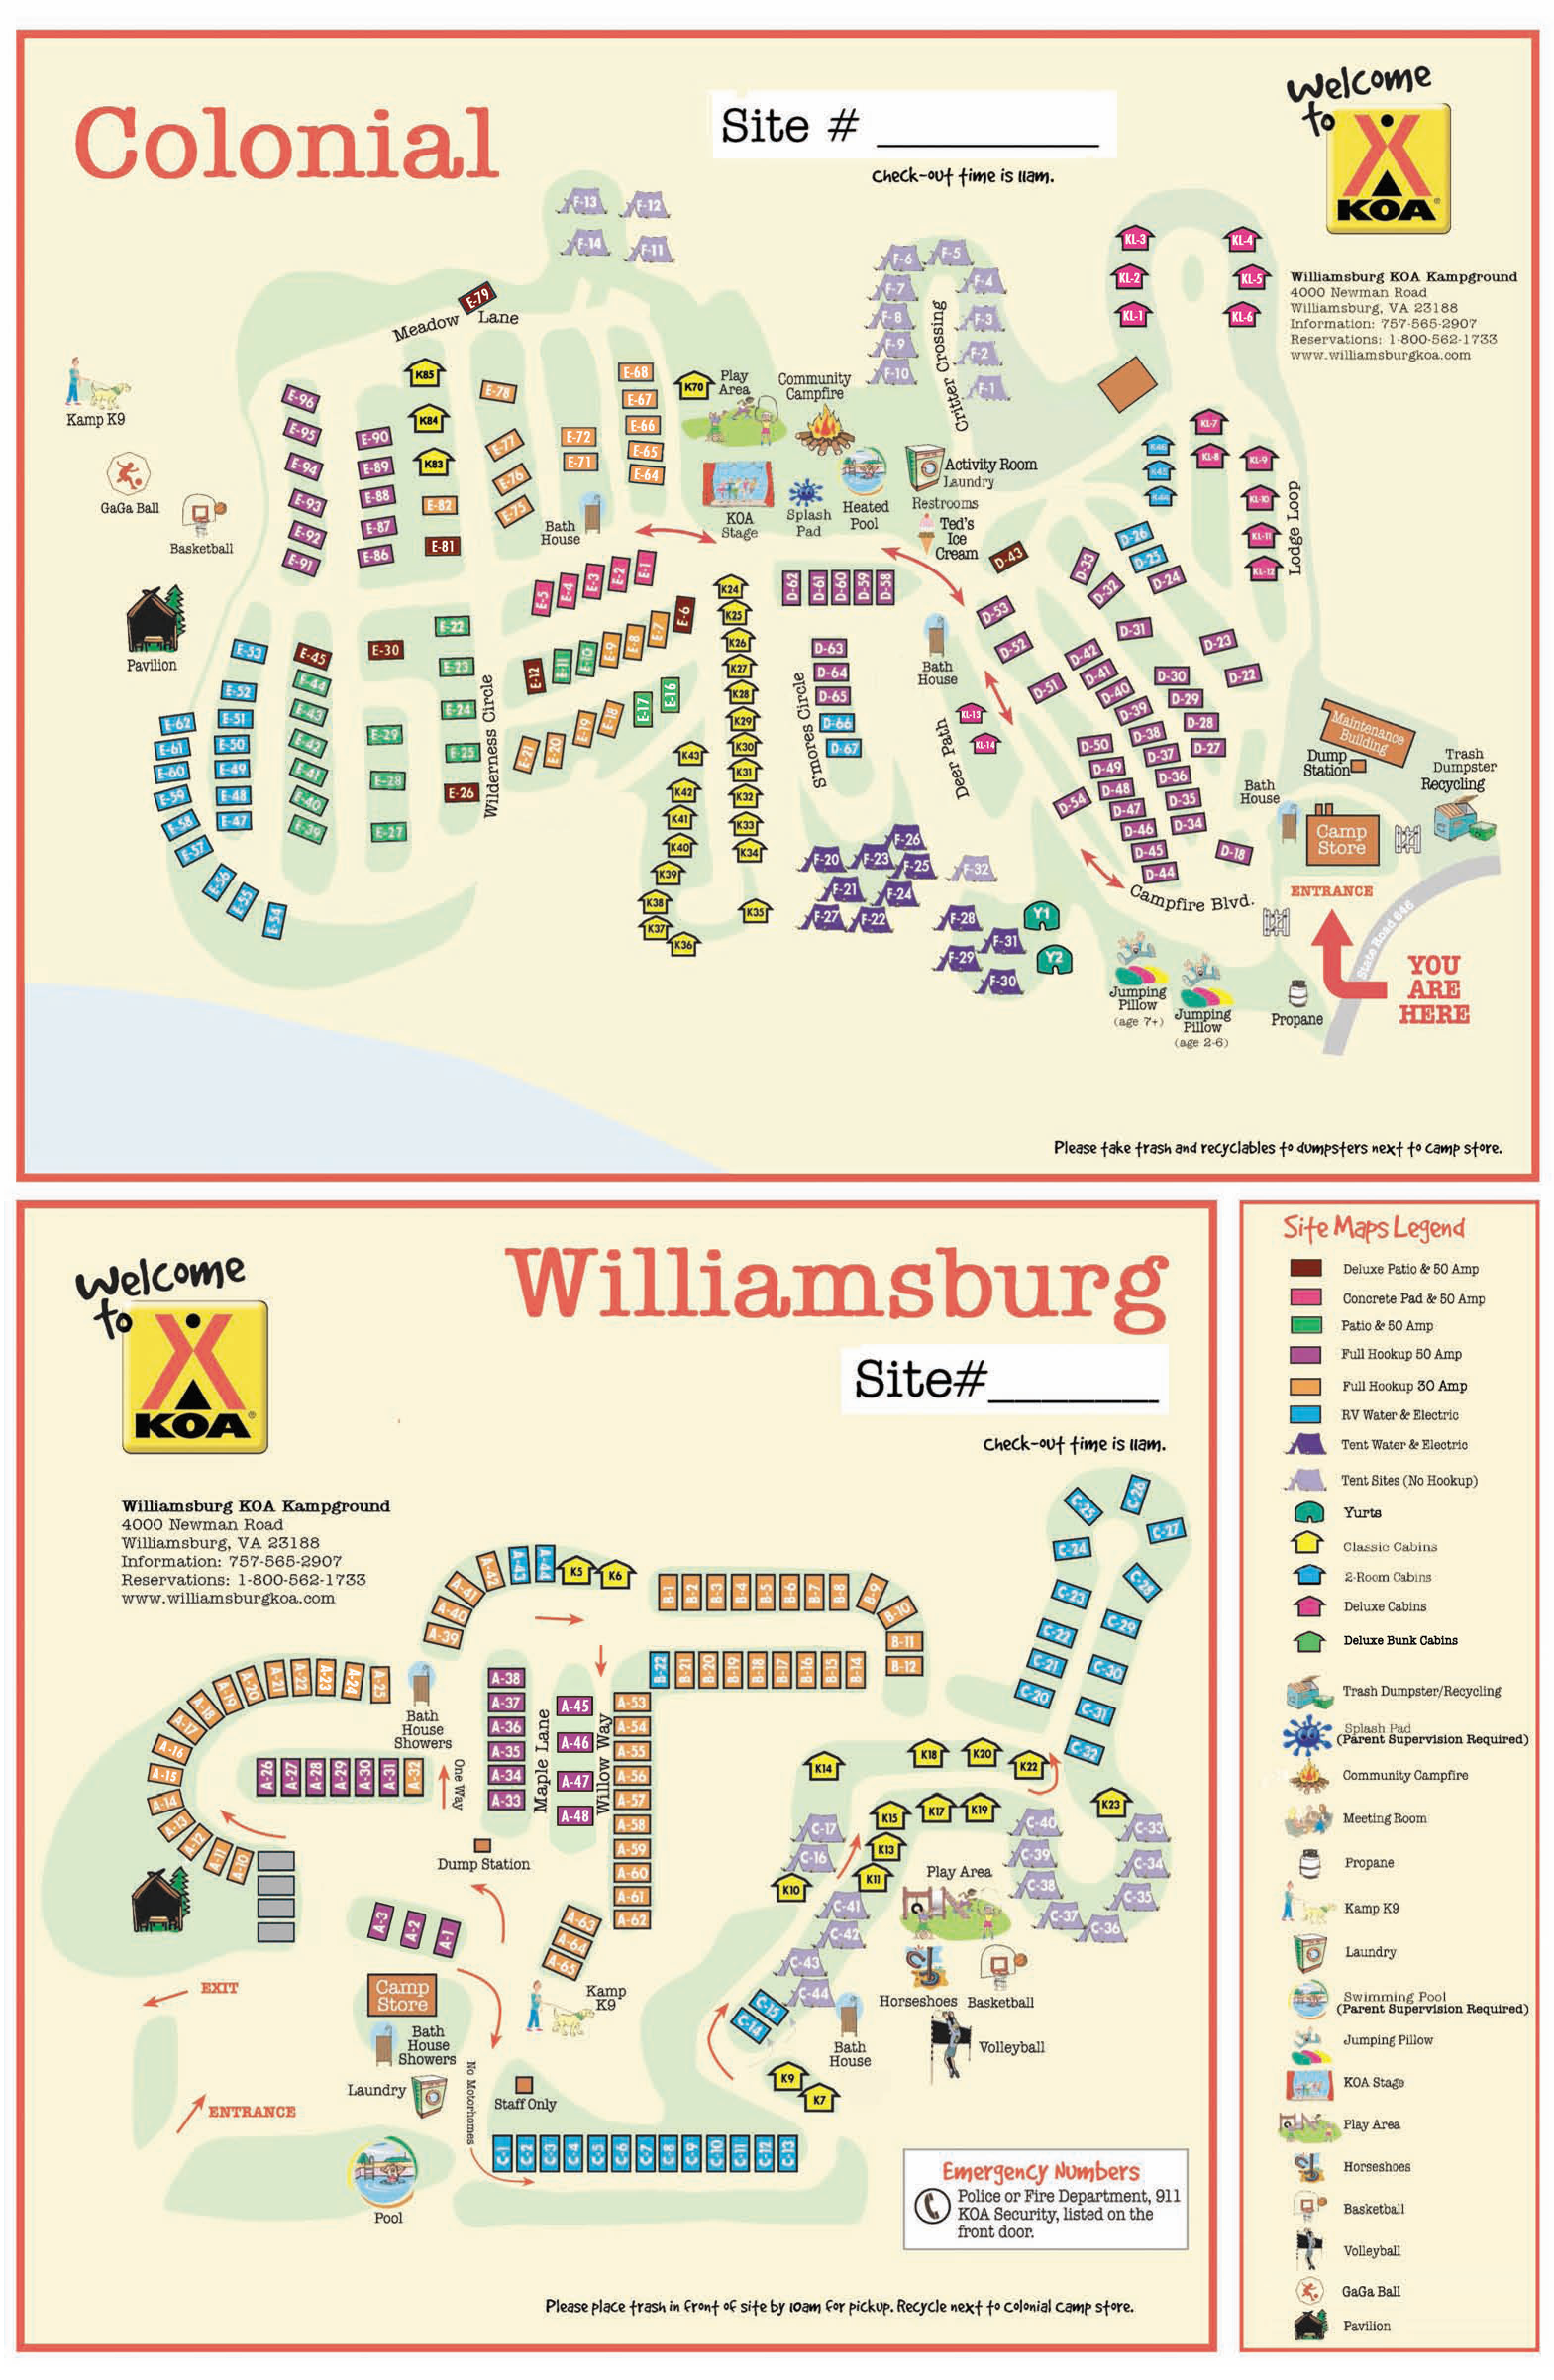 Williamsburg Virginia Campground Williamsburg Busch Gardens - Map of us wiliamburg virginia